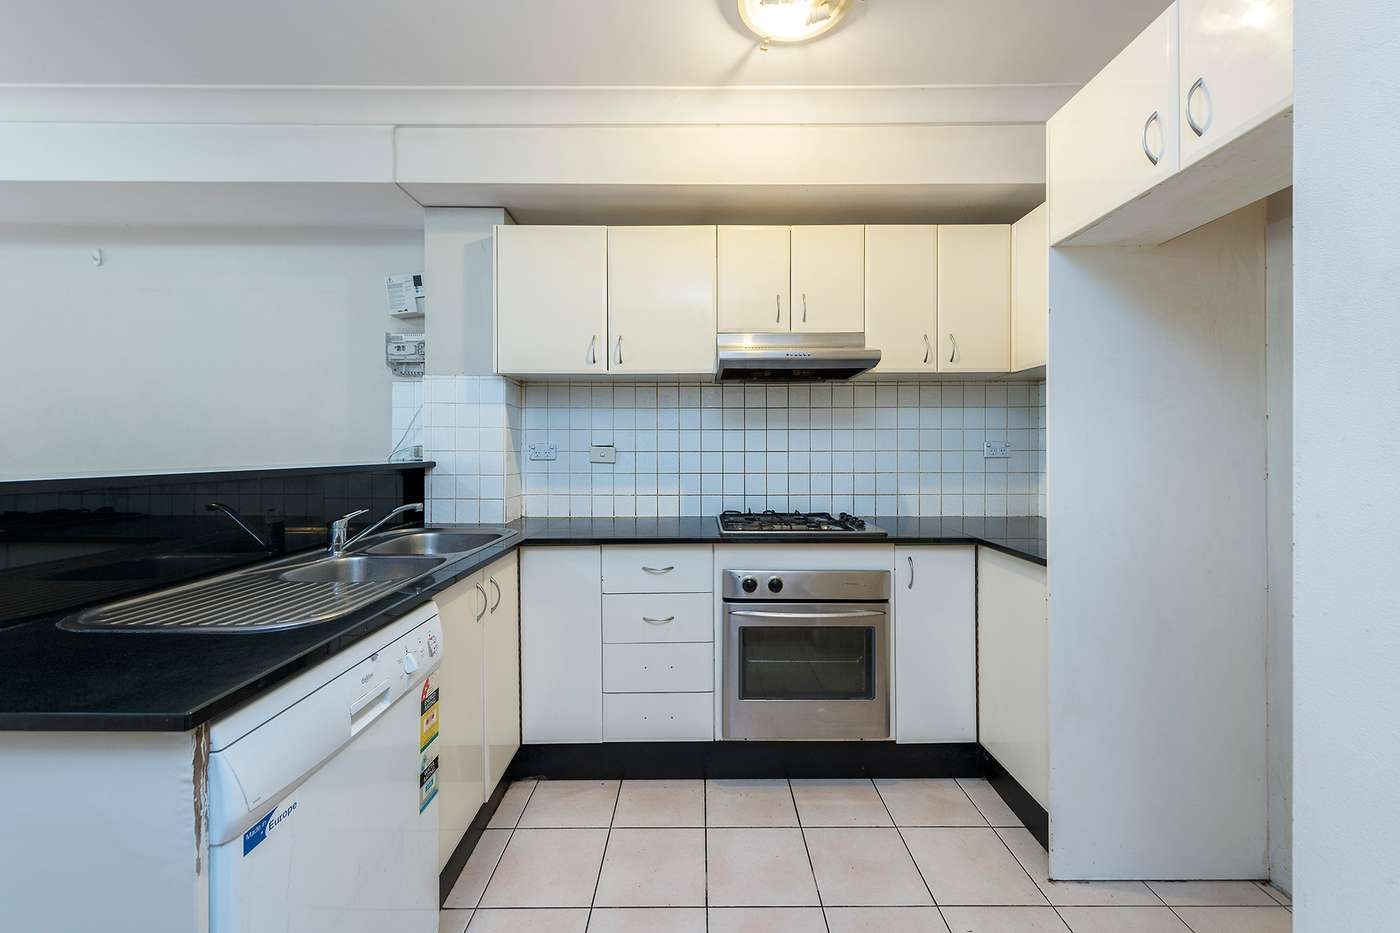 Main view of Homely apartment listing, 39/9-13 Beresford Road, Strathfield, NSW 2135